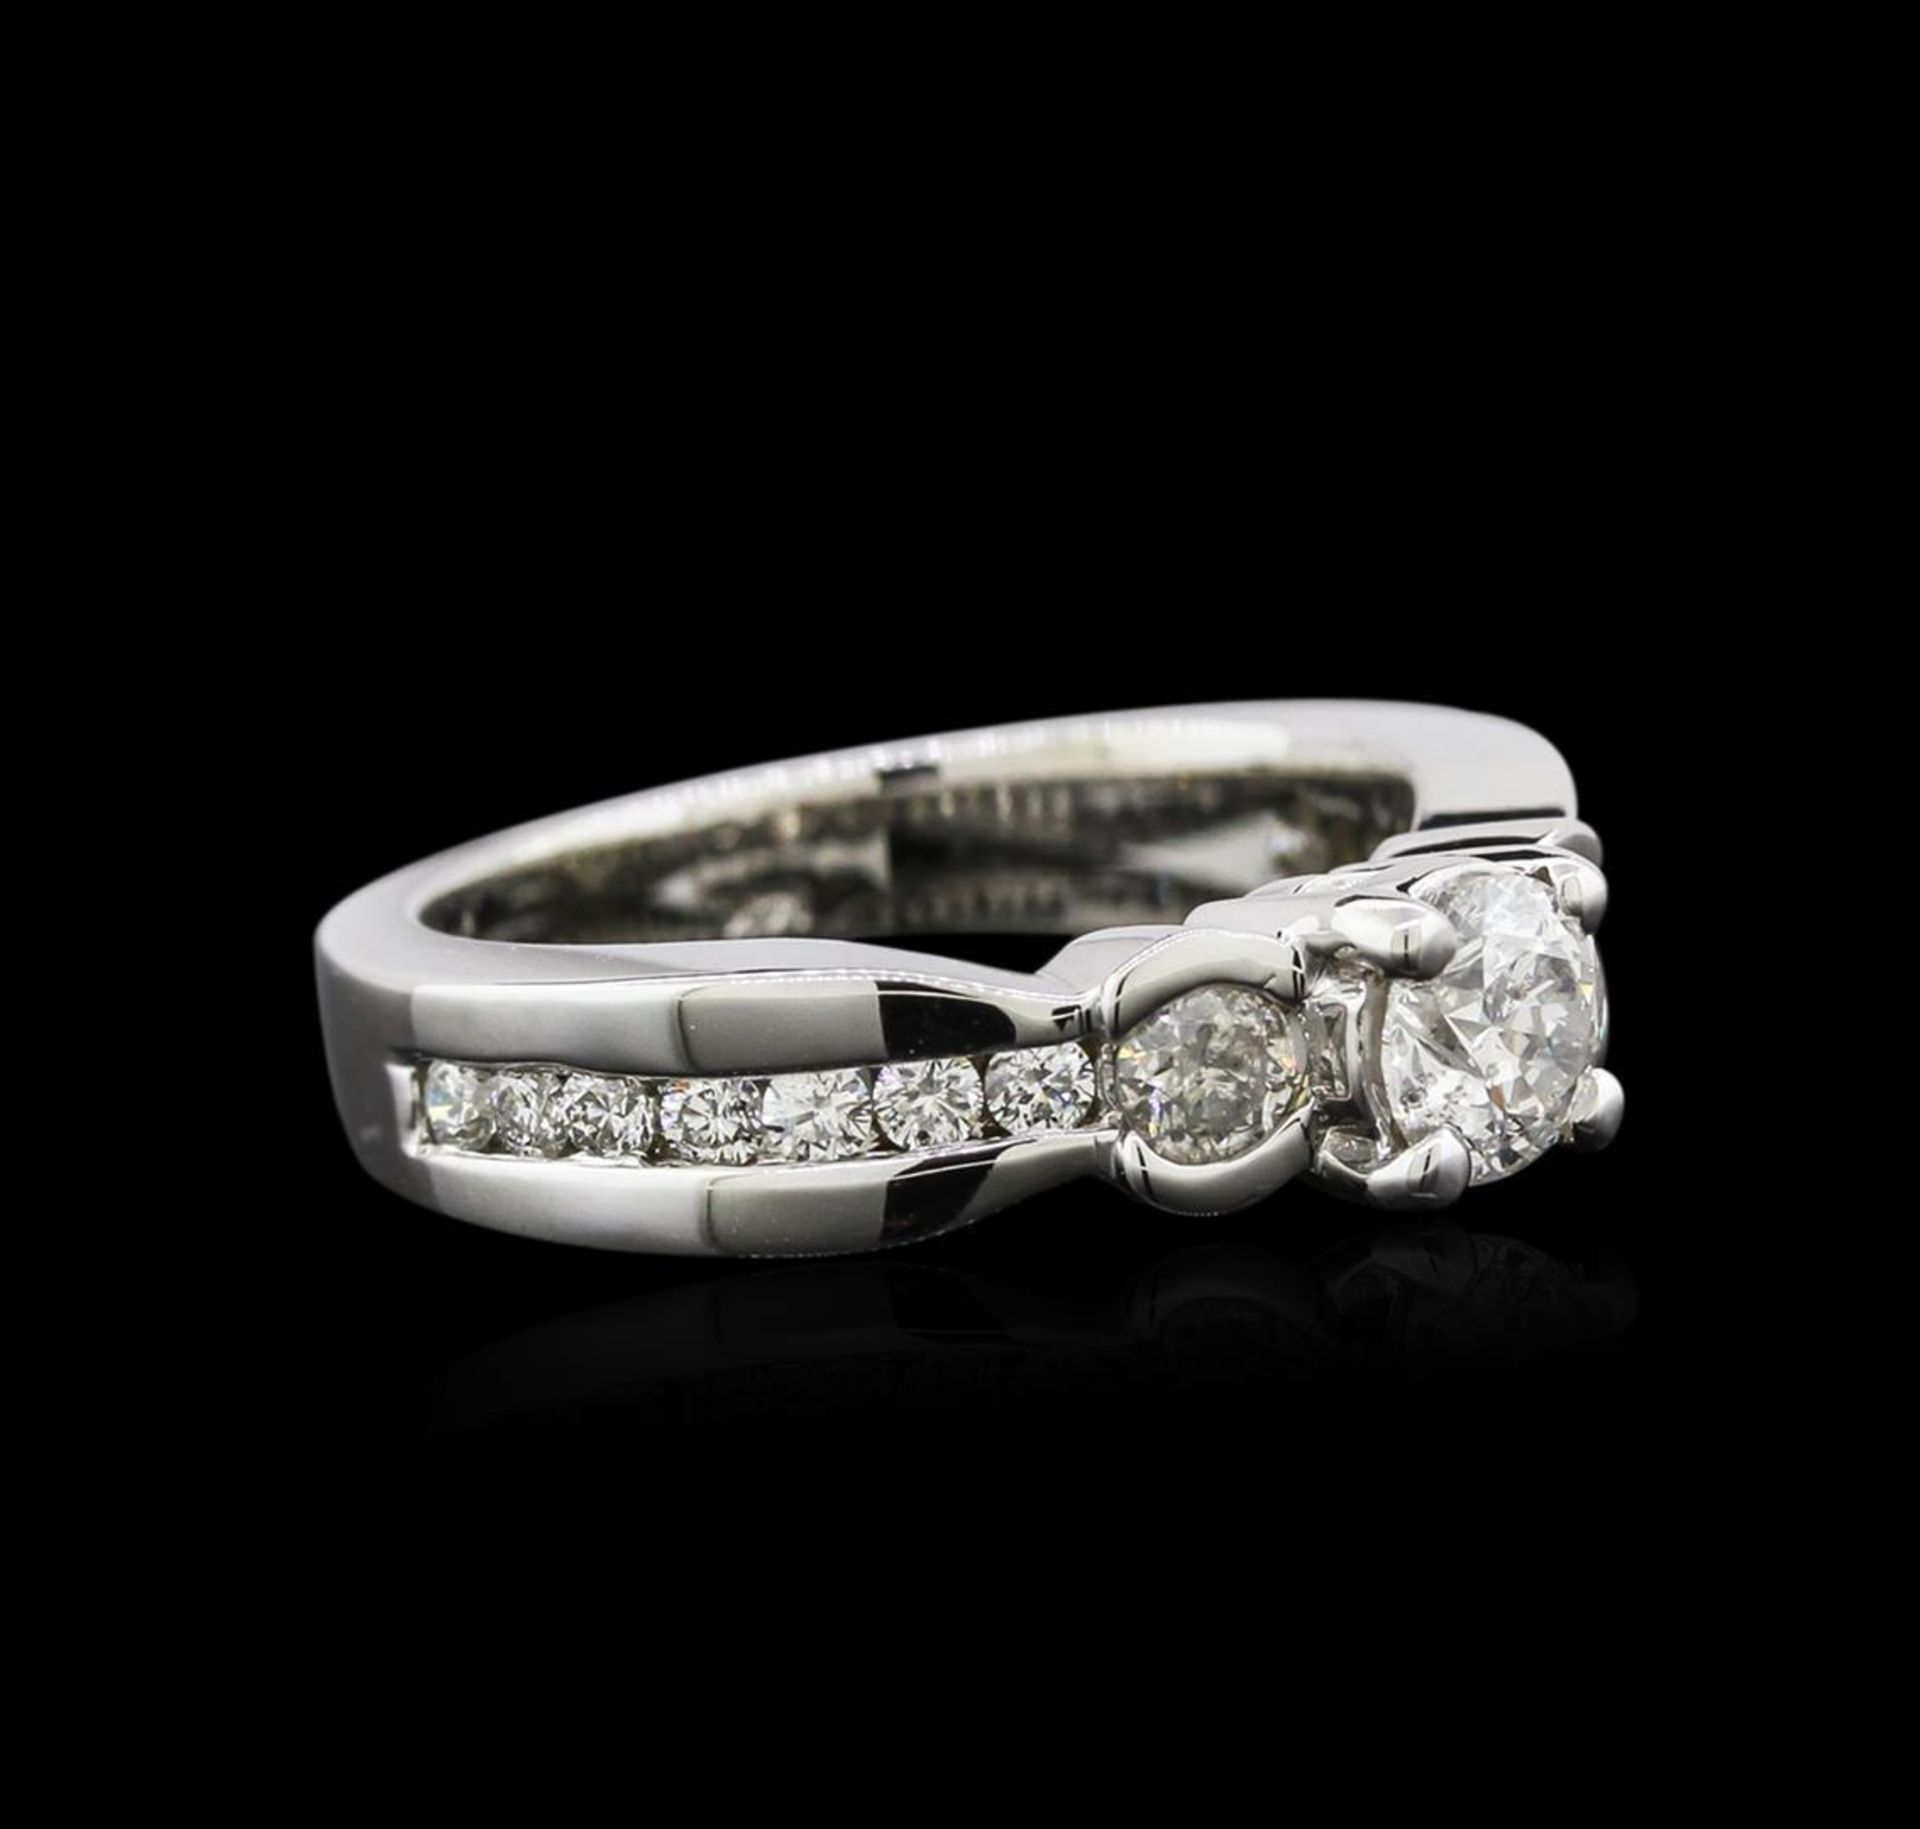 14KT White Gold 1.19 ctw Diamond Ring - Image 2 of 4